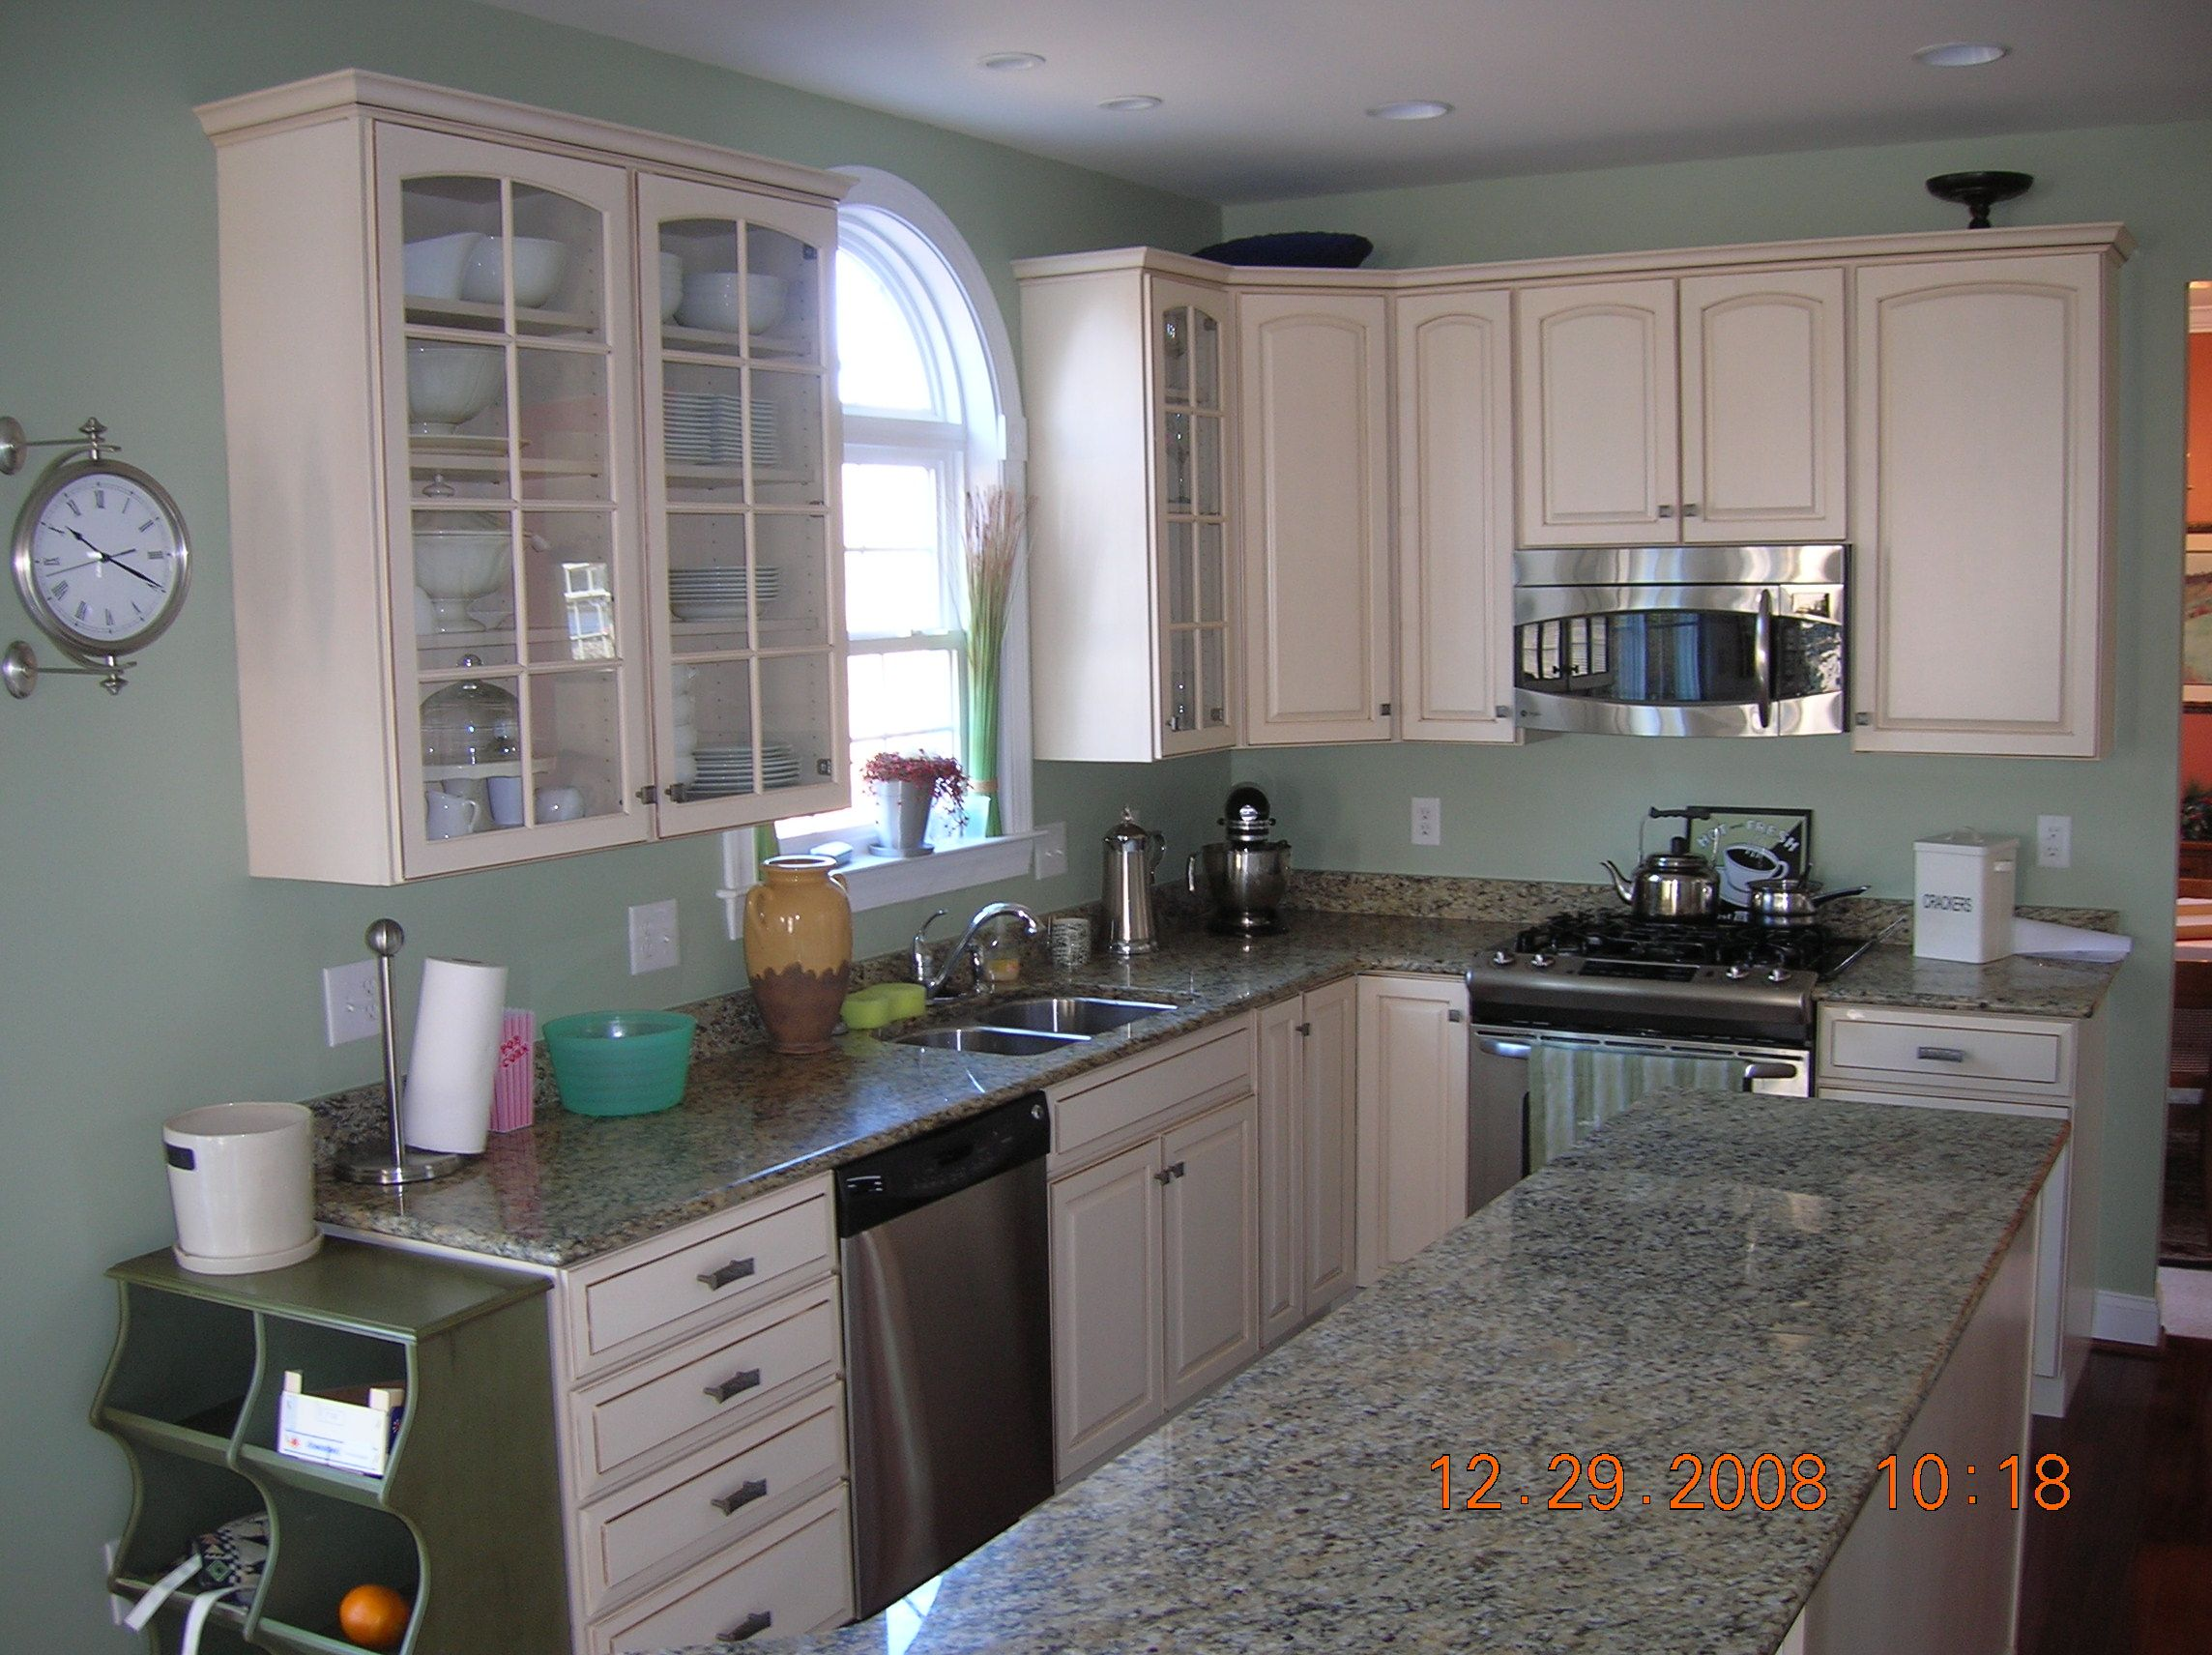 Sherwin williams softened green great color for kitchen for Best green paint for kitchen